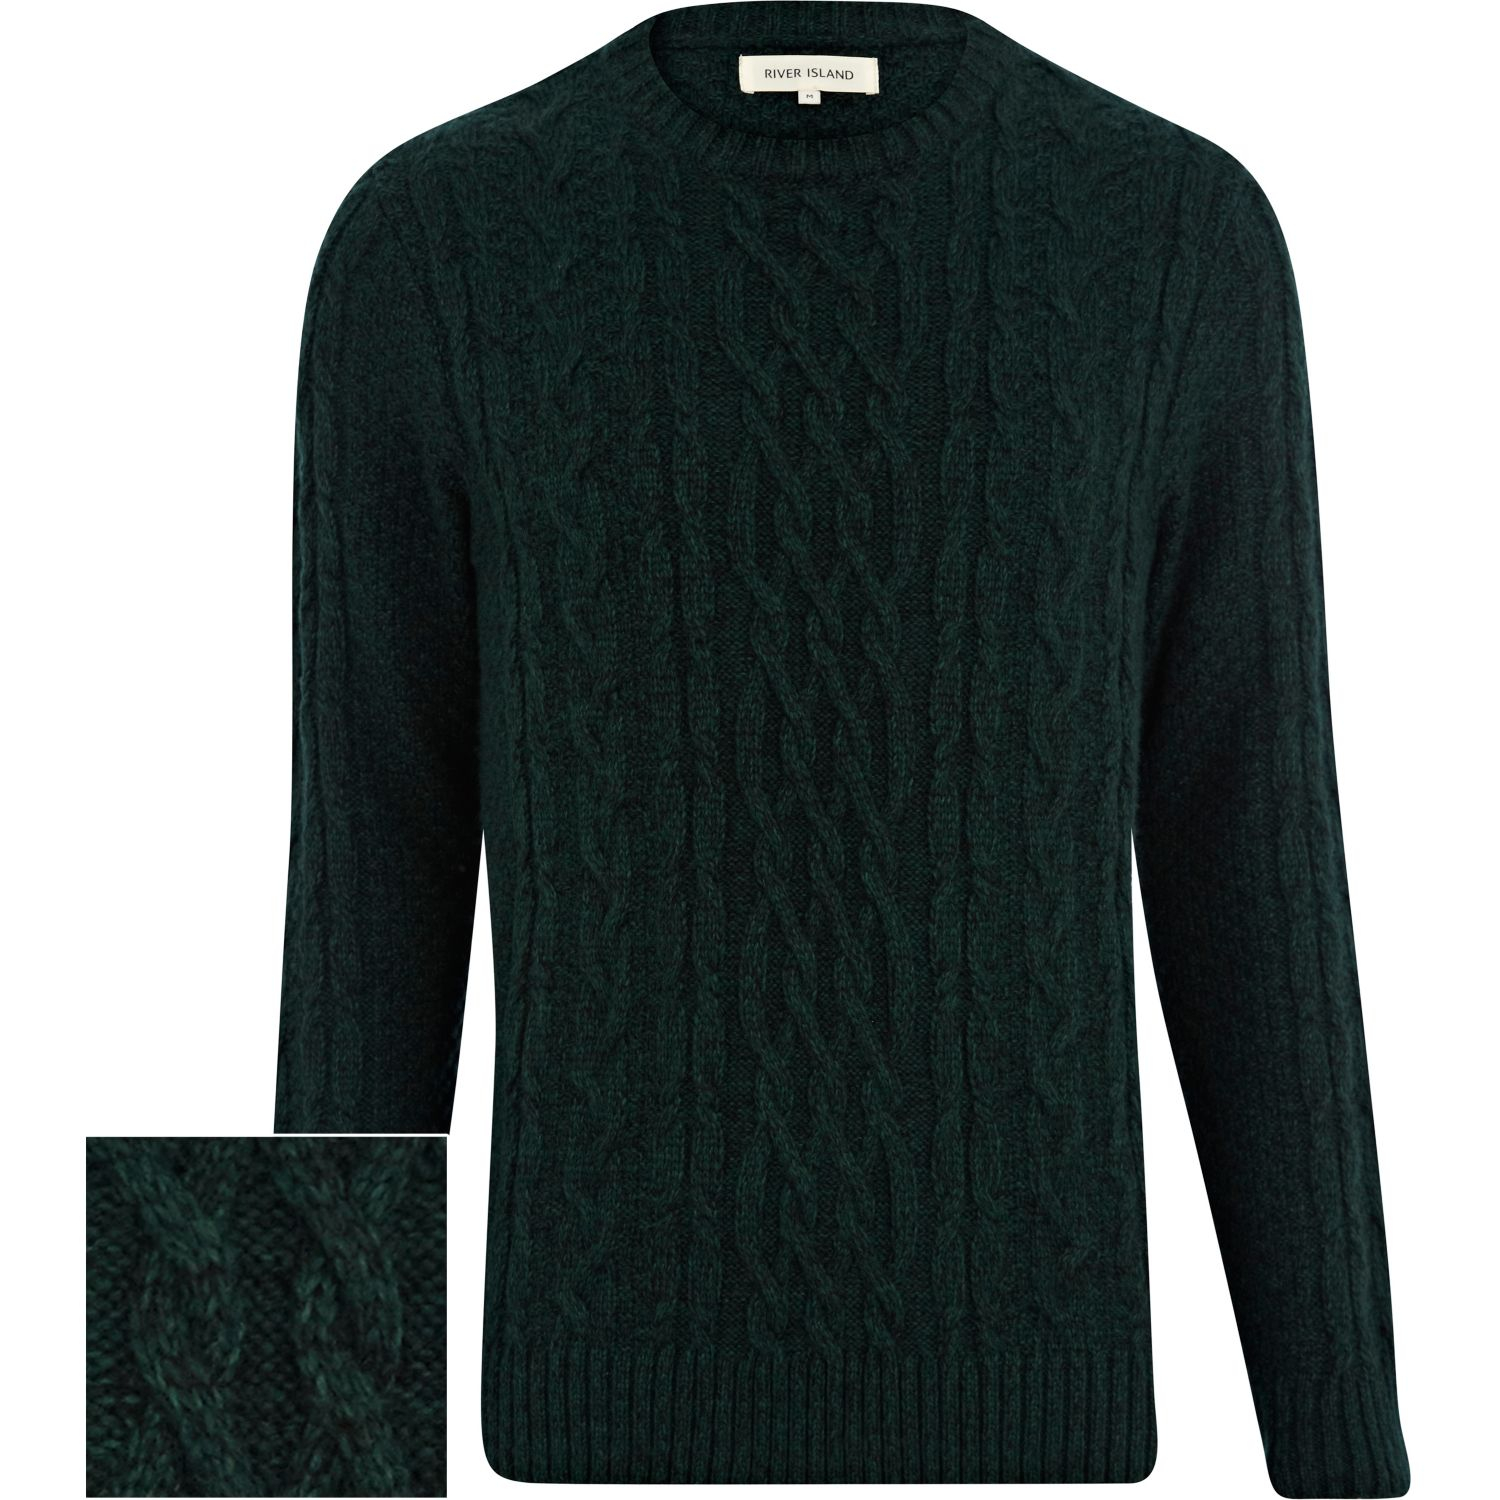 River island Dark Green Cable Knit Sweater in Green for Men | Lyst